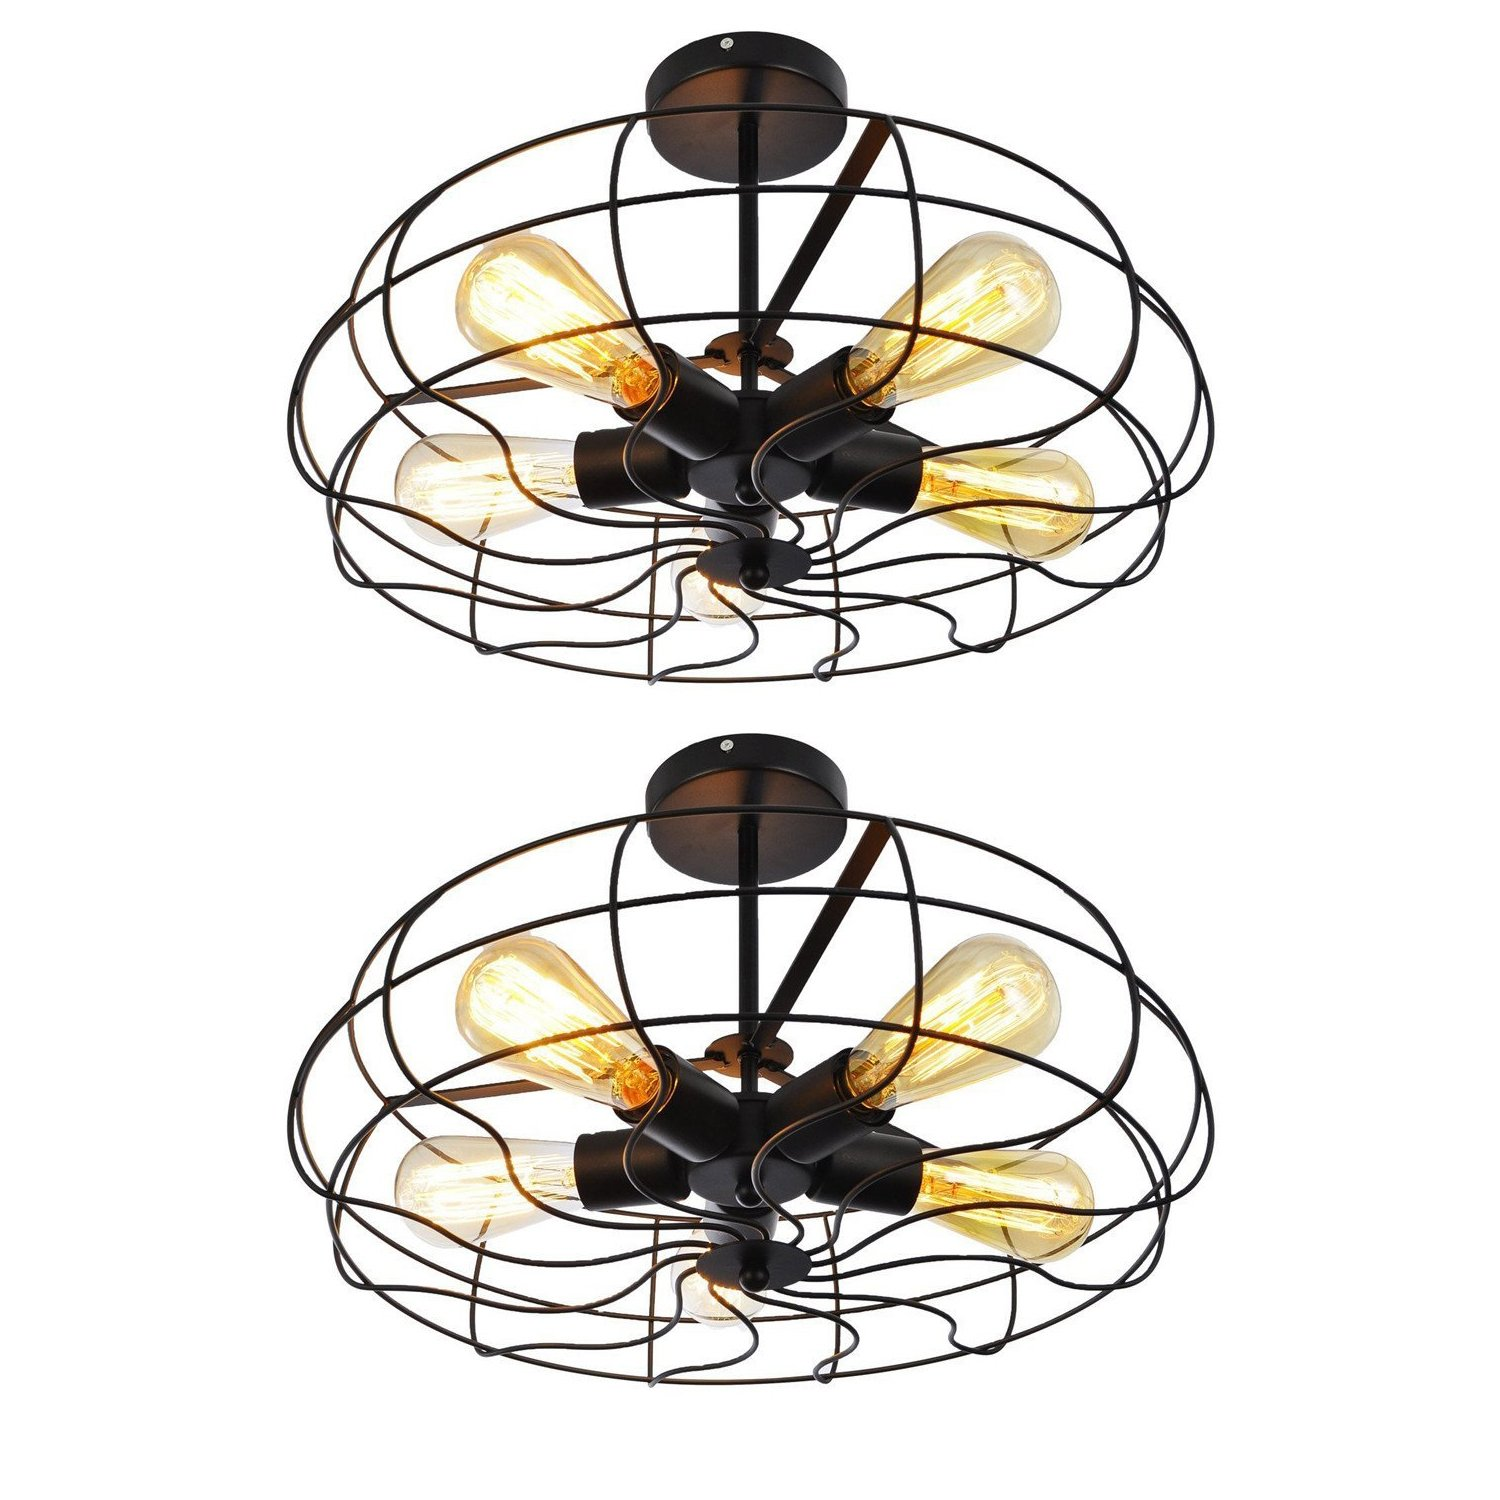 Ceiling Light, MKLOT Industrial Fan Style Wrought Iron Semi Flush Mount 18.11 Wide Ceiling Pendant Light Chandelier with 5 Lights - Environmentally Ceramics Caps(2 Pack)